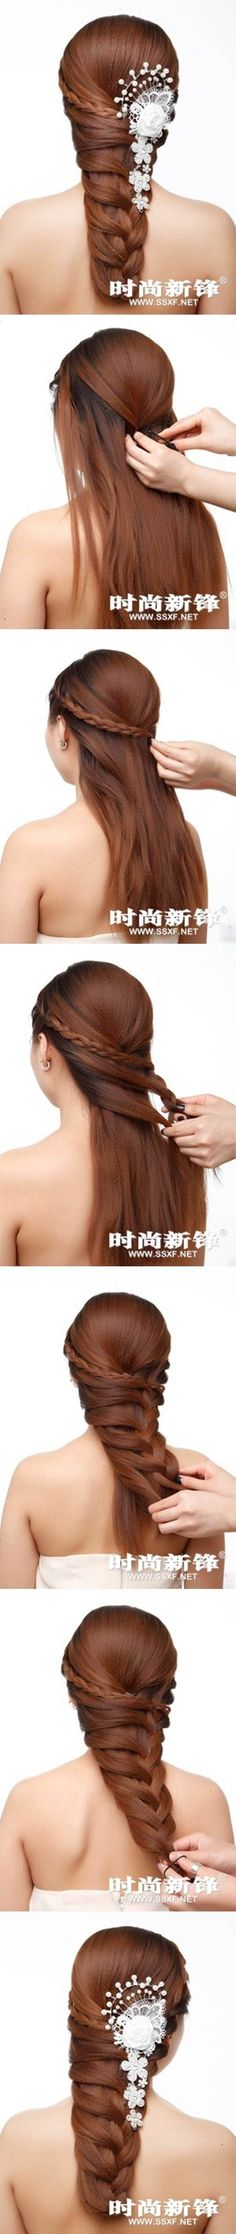 DIY Asymmetrical Braided Hairstyle | iCreativeIdeas.com LIKE Us on Facebook ==> https://www.facebook.com/icreativeideas